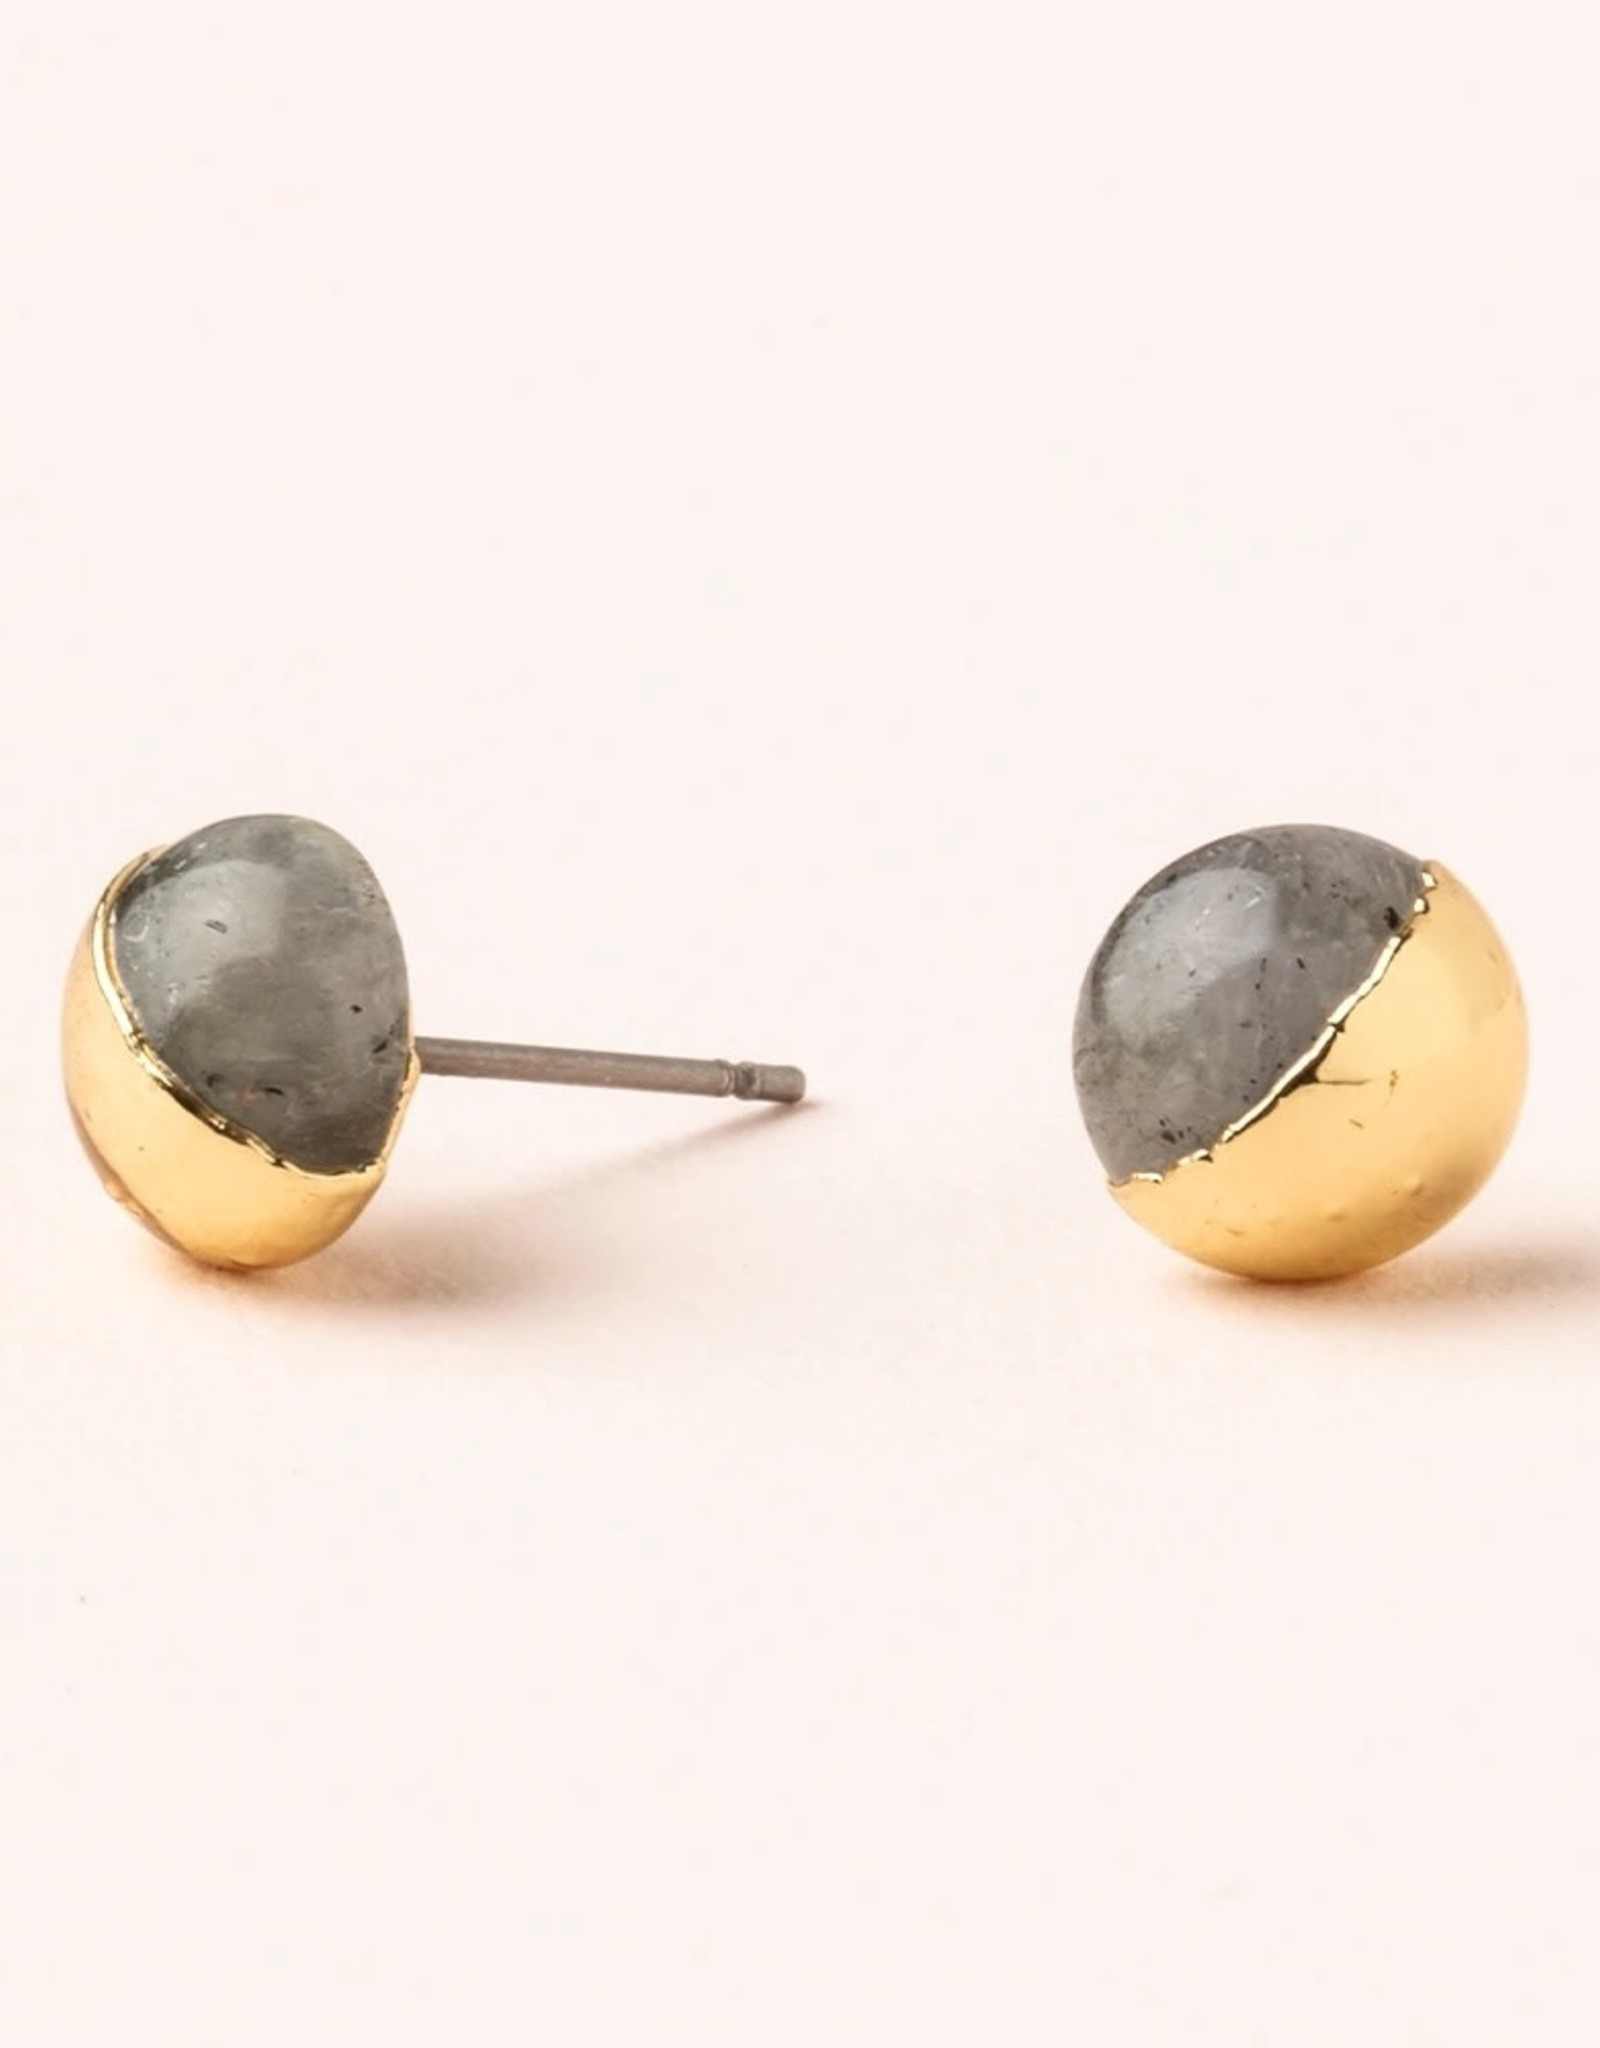 Scout Scout Dipped Stone Stud Earring